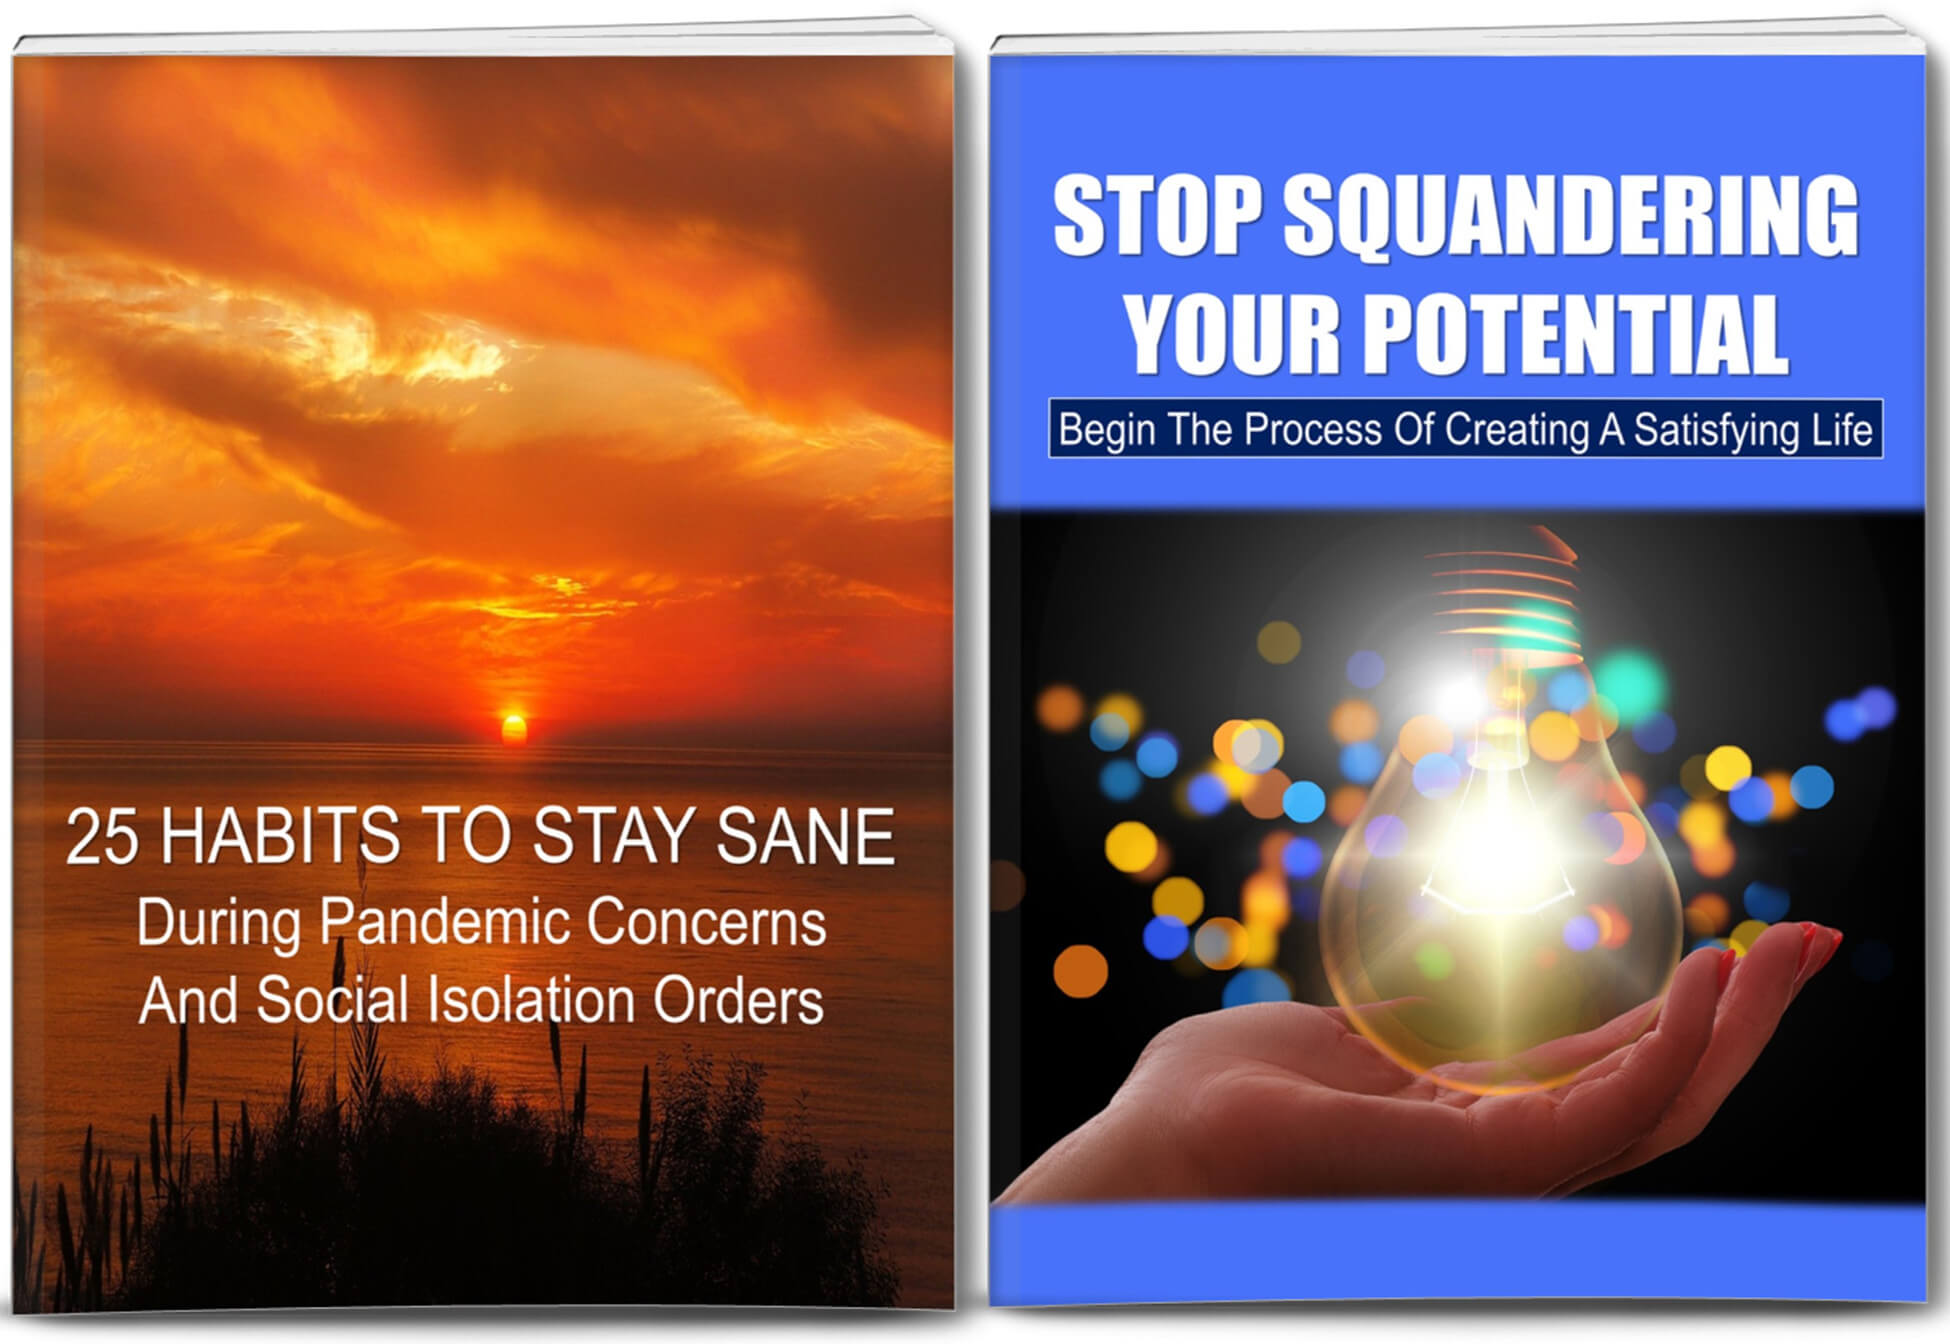 Stay Sane During Pandemic And Potential PLR